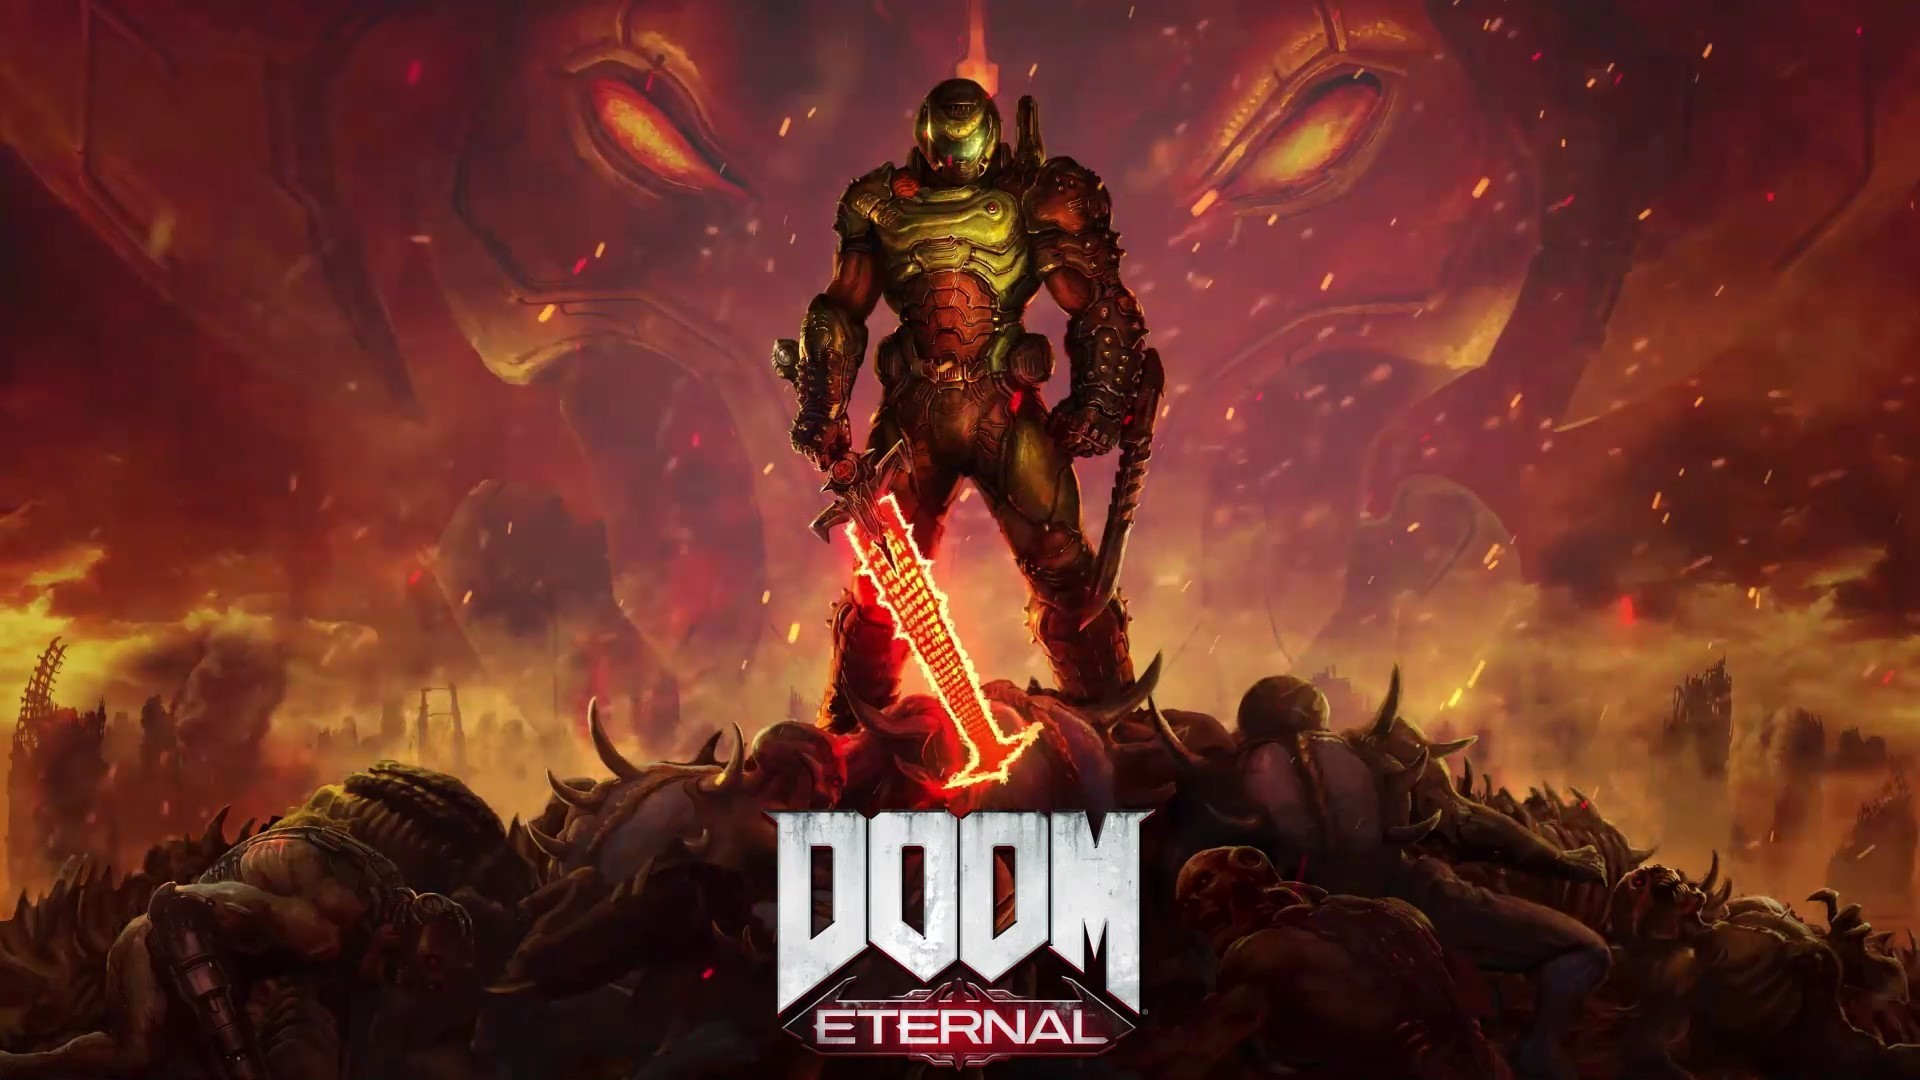 Doom Eternal Wallpaper Kolpaper Awesome Free Hd Wallpapers